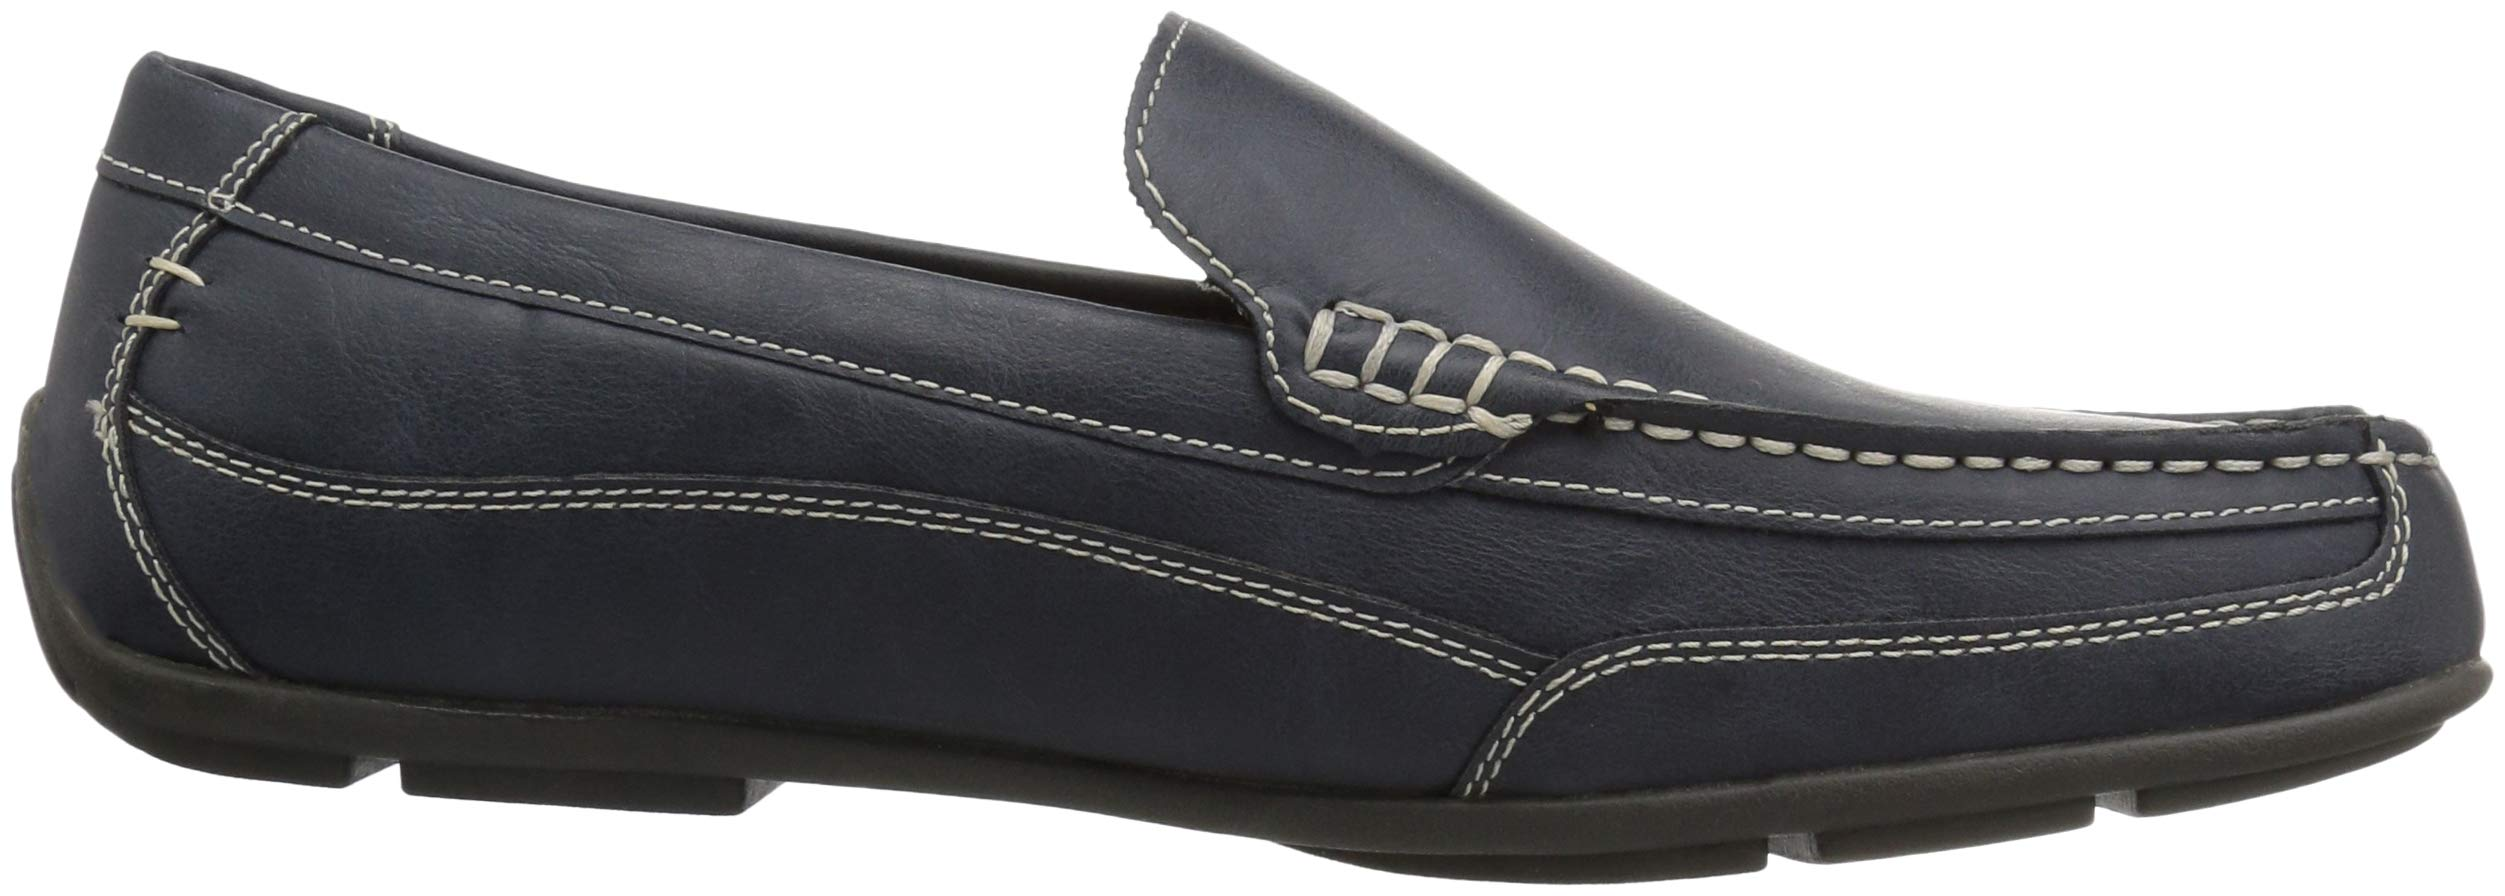 Tommy Hilfiger Men's DATHAN Shoe, navy, 11.5 Medium US by Tommy Hilfiger (Image #7)